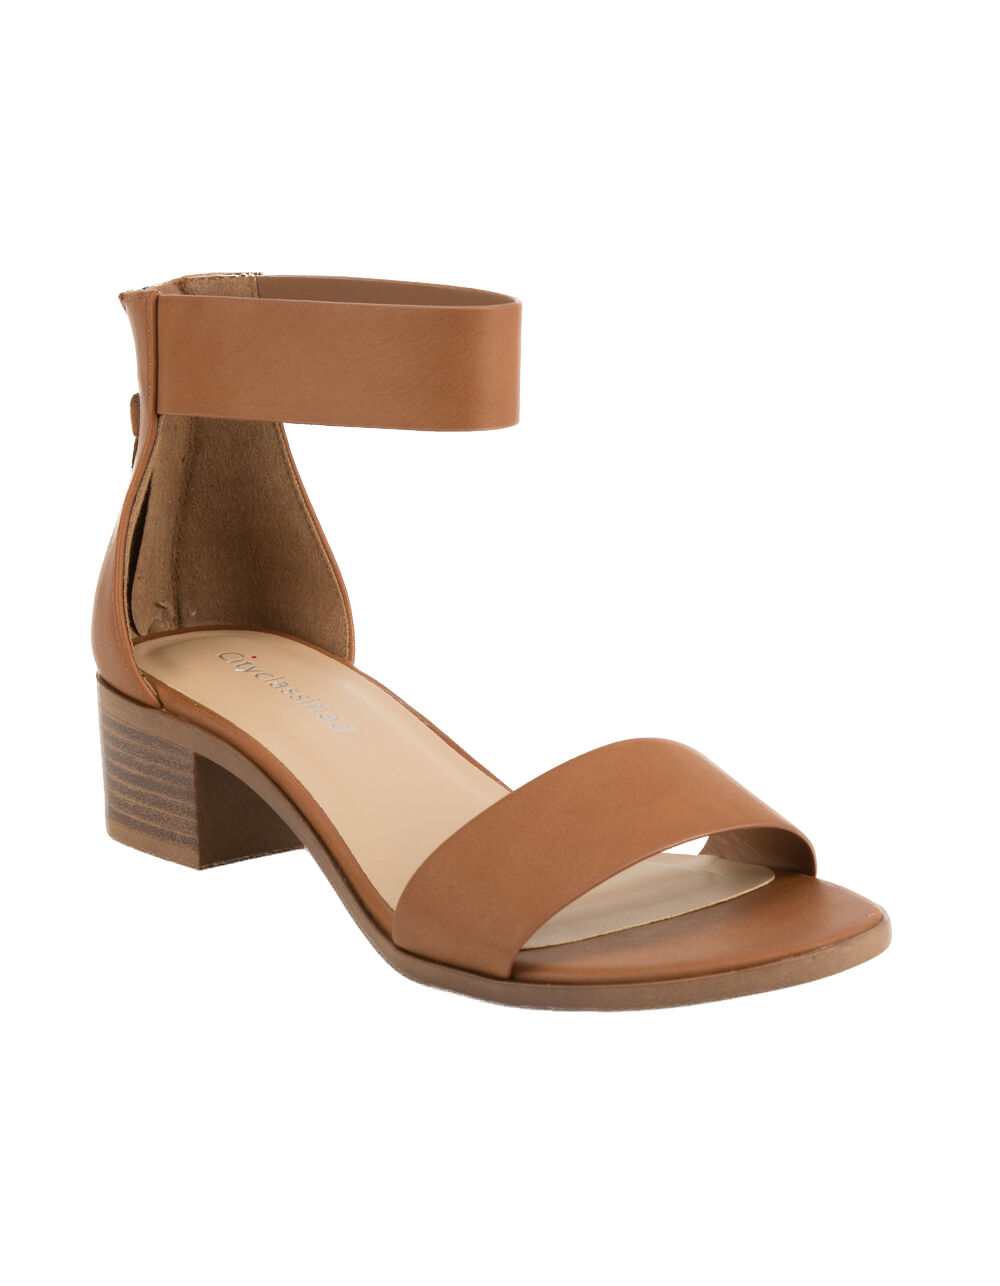 Image of CITY CLASSIFIED BLOCK TAN HEELED SANDALS